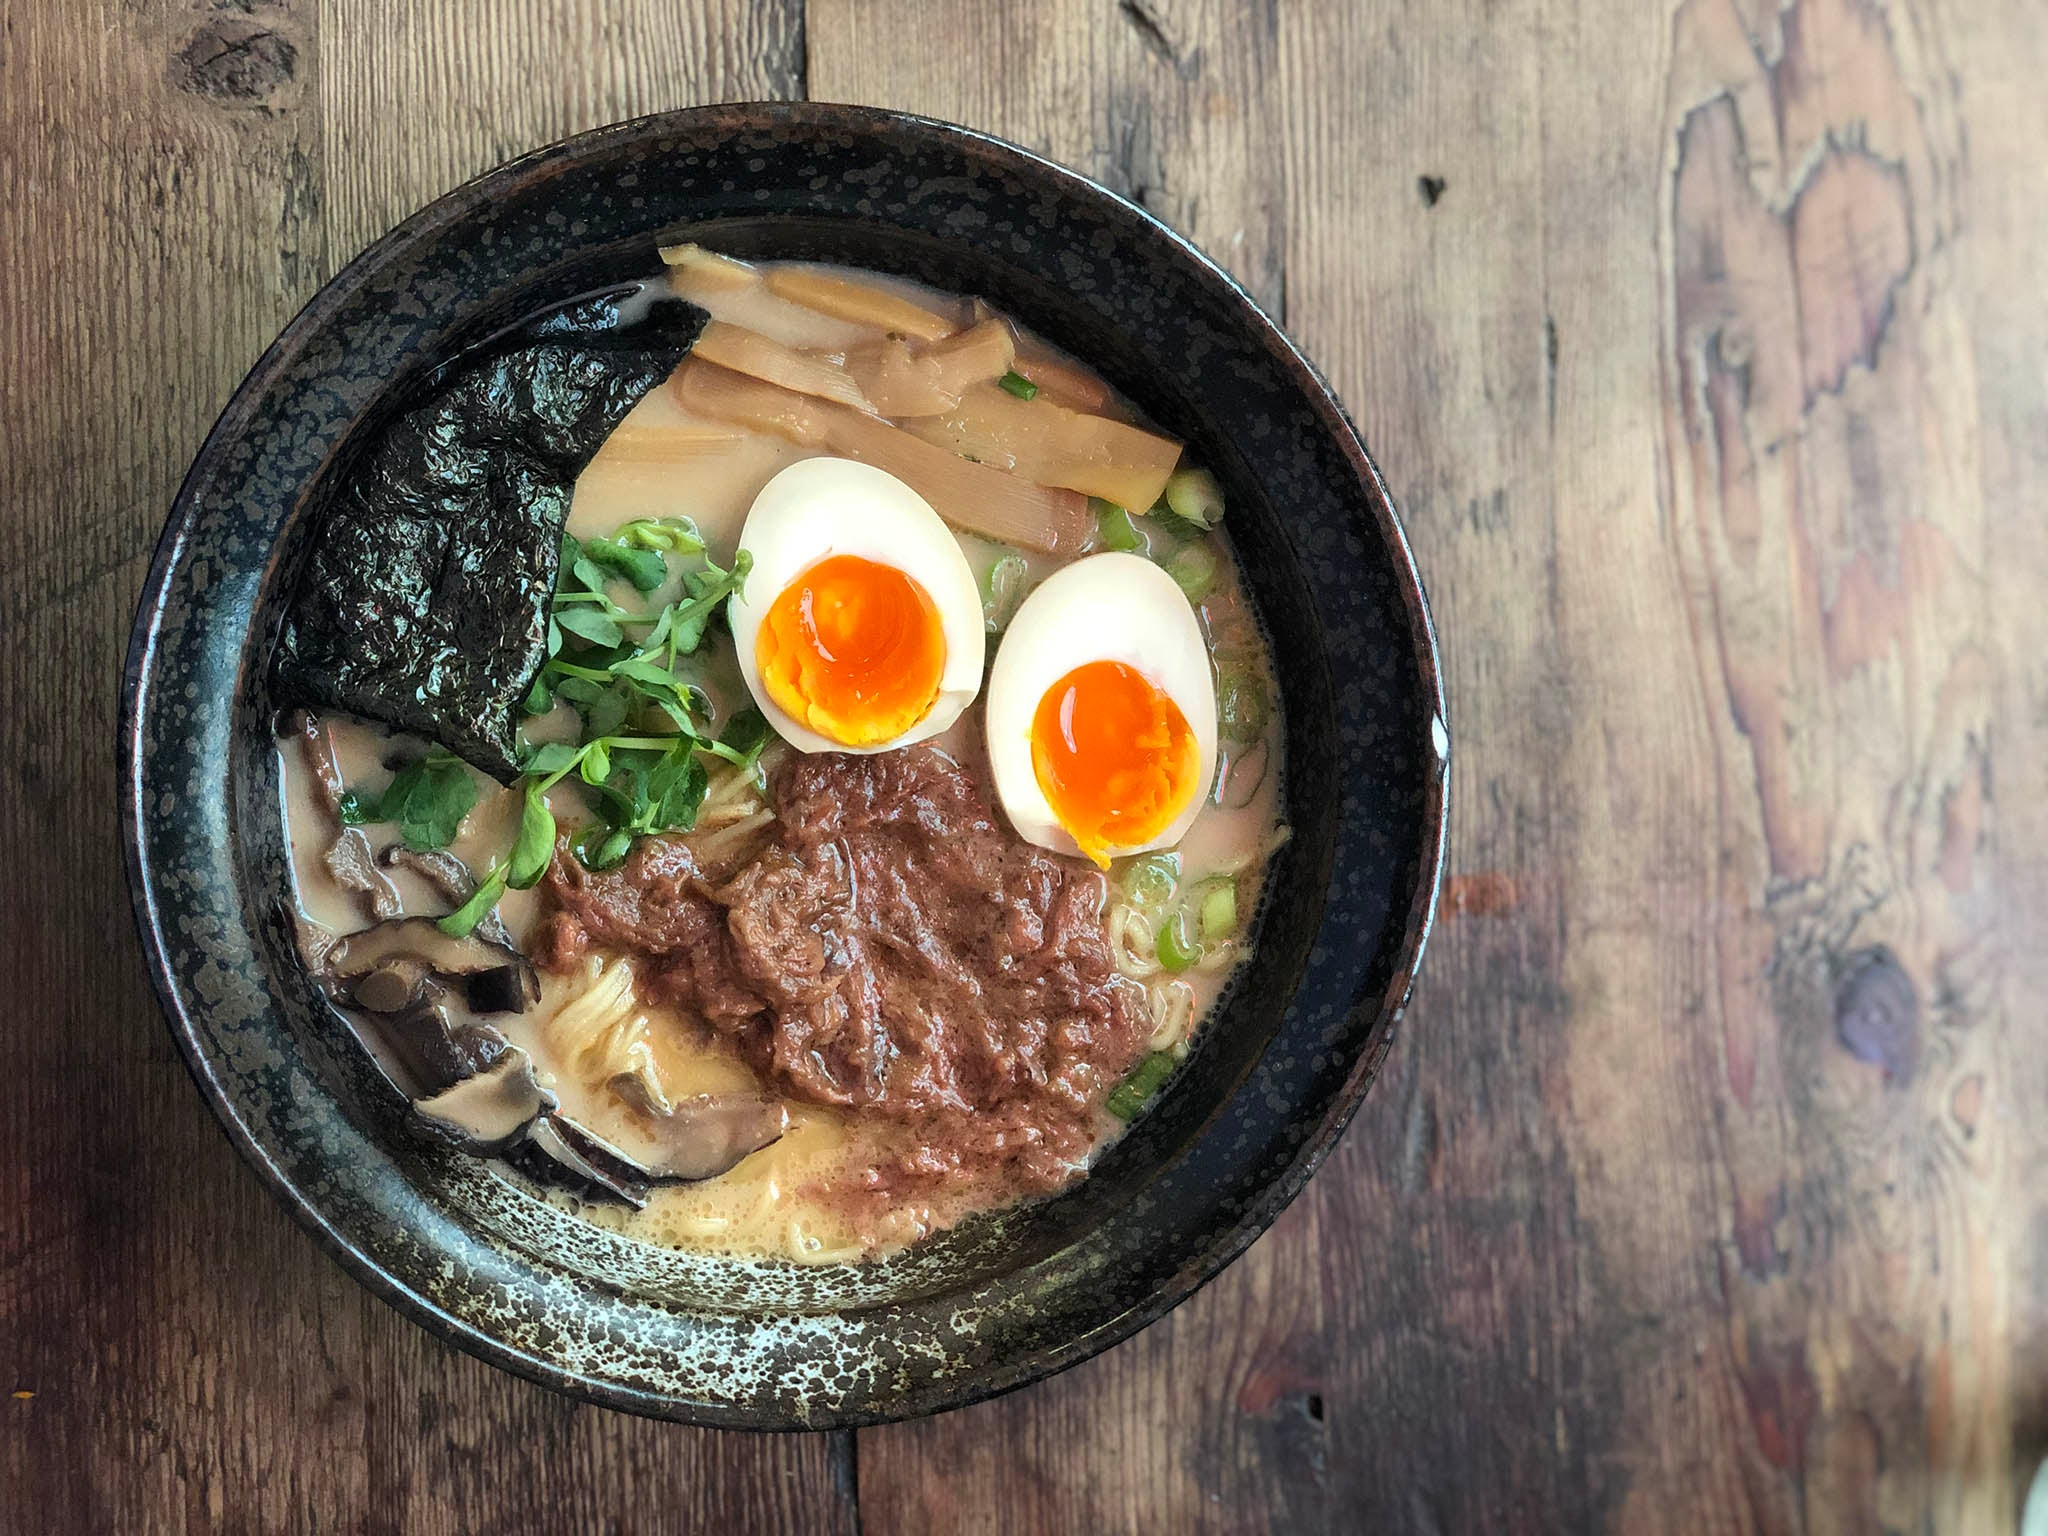 Ramo Ramen, restaurant review: How being locked inside a toilet leads to expanding your knowledge of cuisines 1